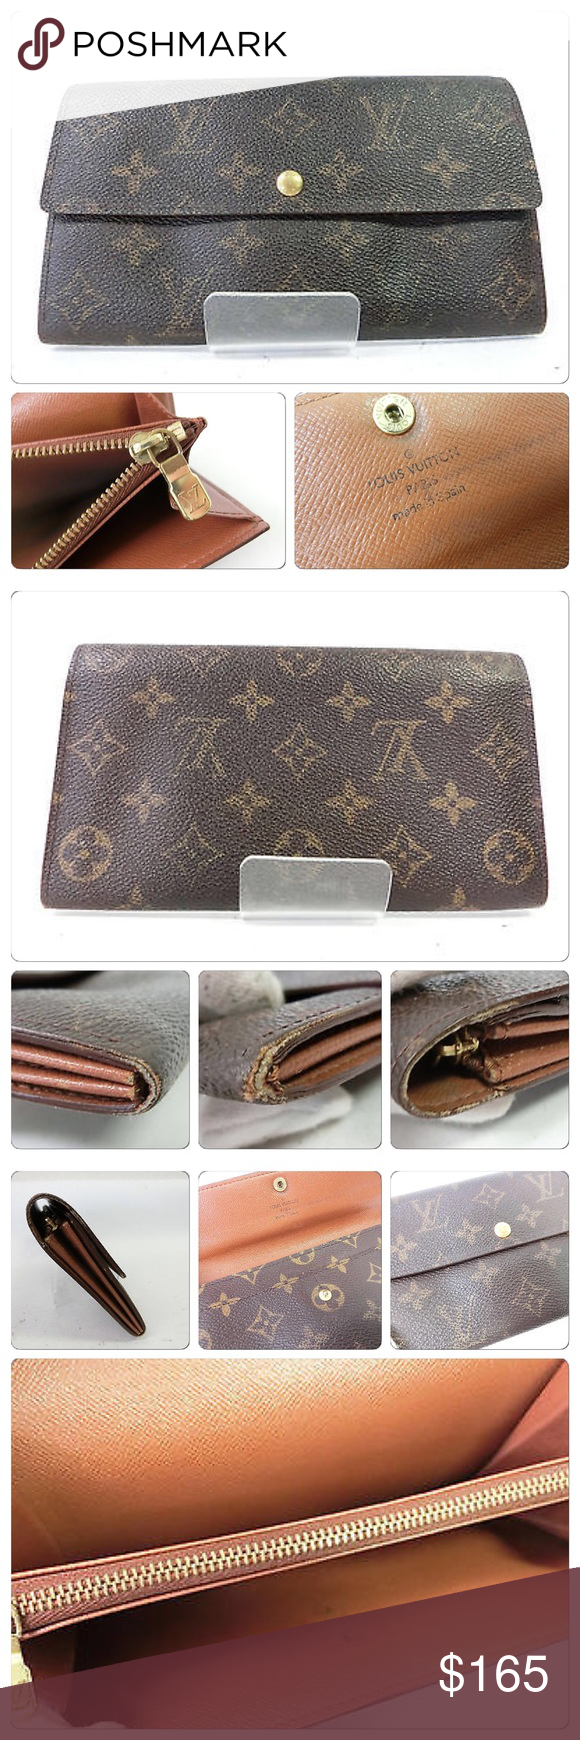 Louis Vuitton Portefeuille Sarah Wallet Authentic used wallet from Louis Vuitton. I don't trade so please don't ask. Closure snap is loose. Louis Vuitton Bags Wallets